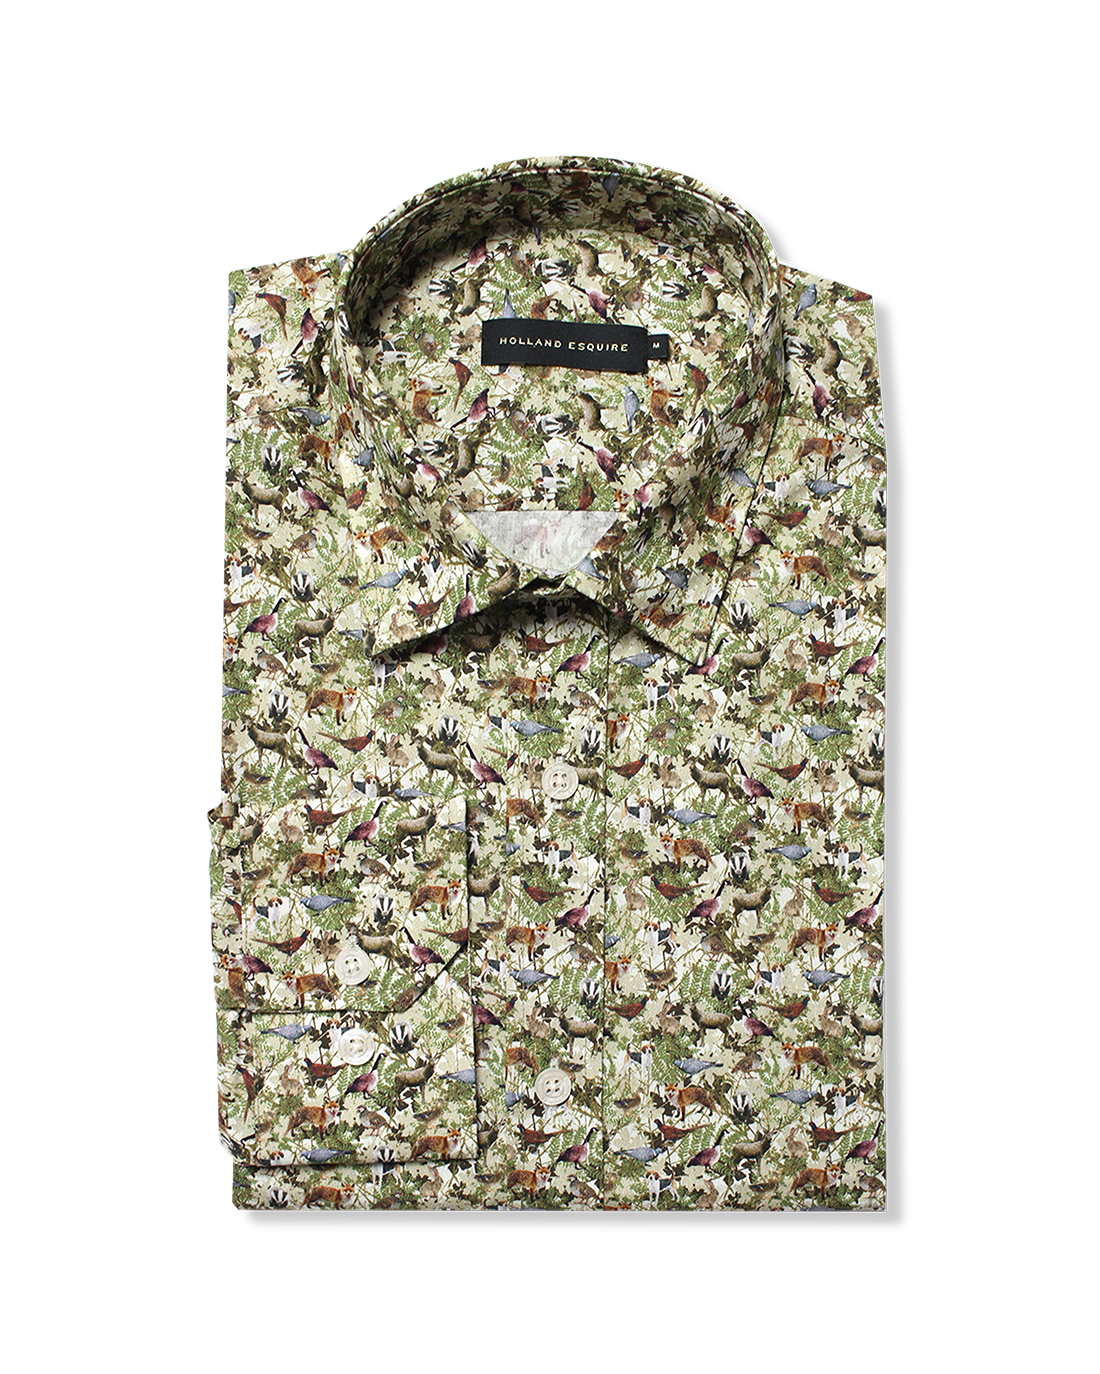 The ROTW Shirt - Holland Esquire